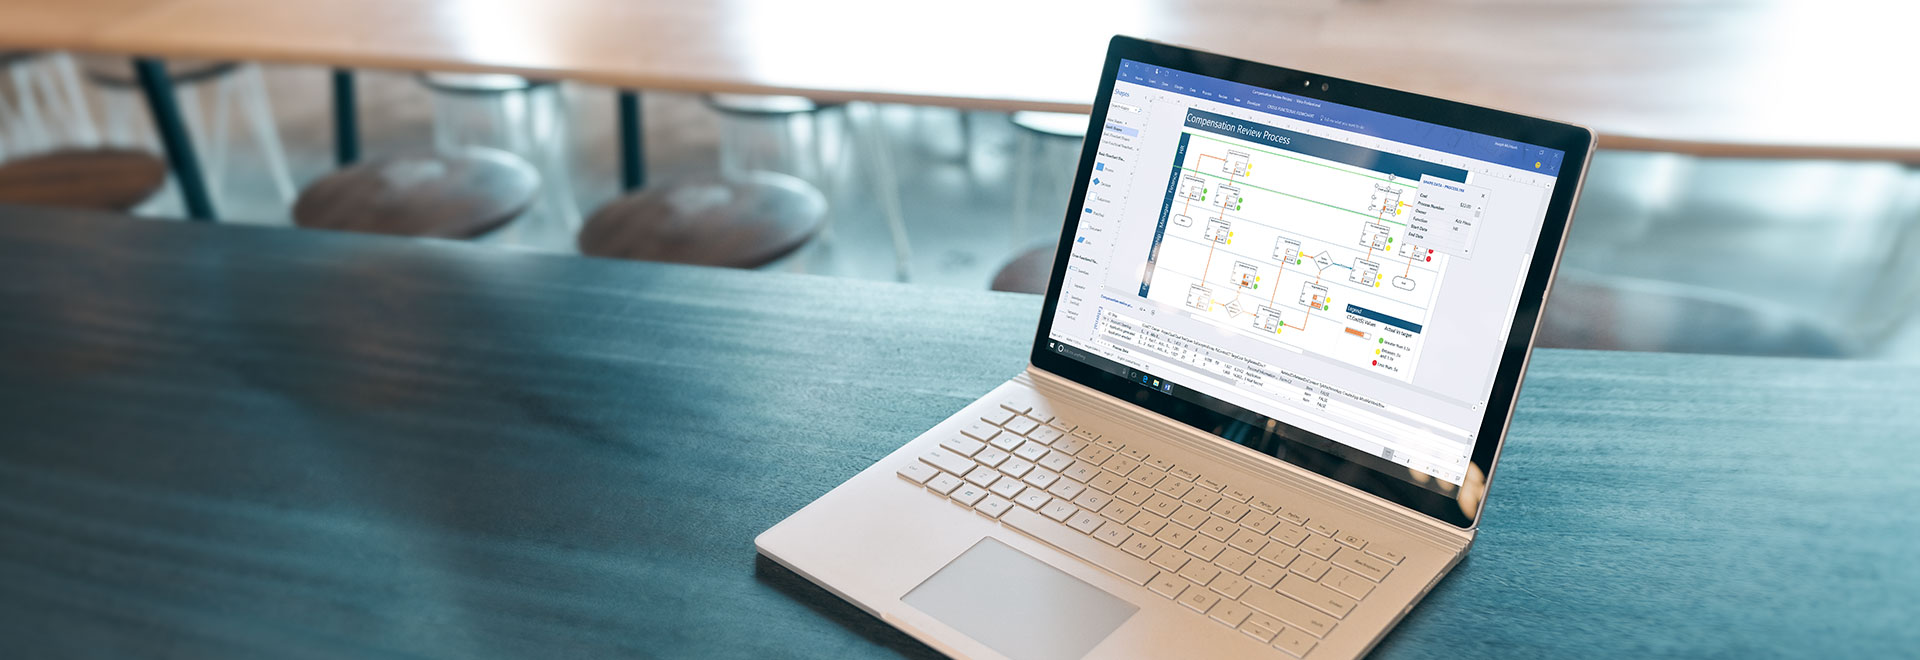 A laptop displaying a process workflow diagram in Visio